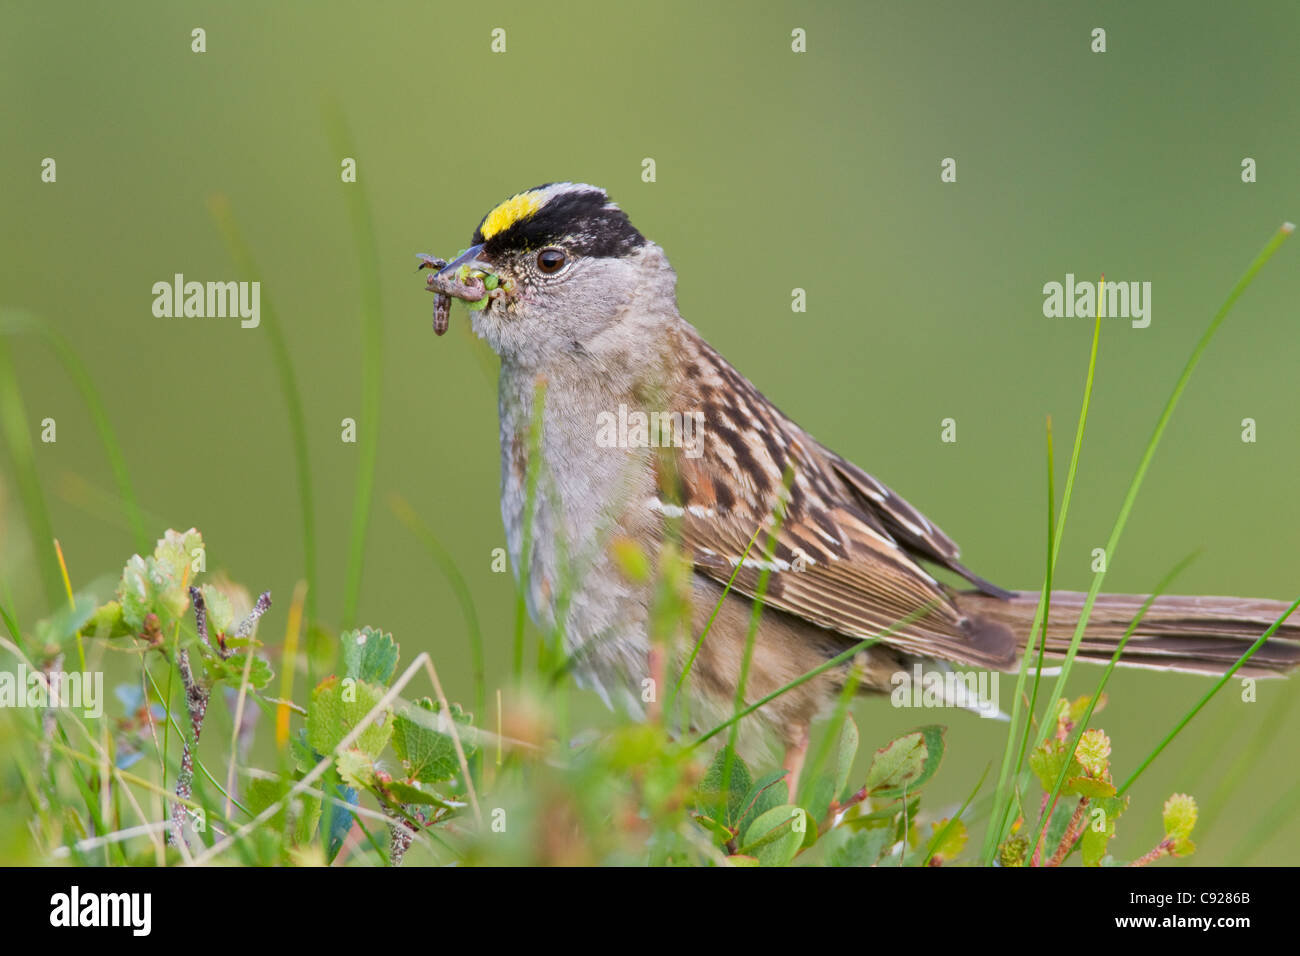 Close up of a Golden-crowned Sparrow with its bill full of worms to feed young, Arctic Valley, Chugach State Park, - Stock Image